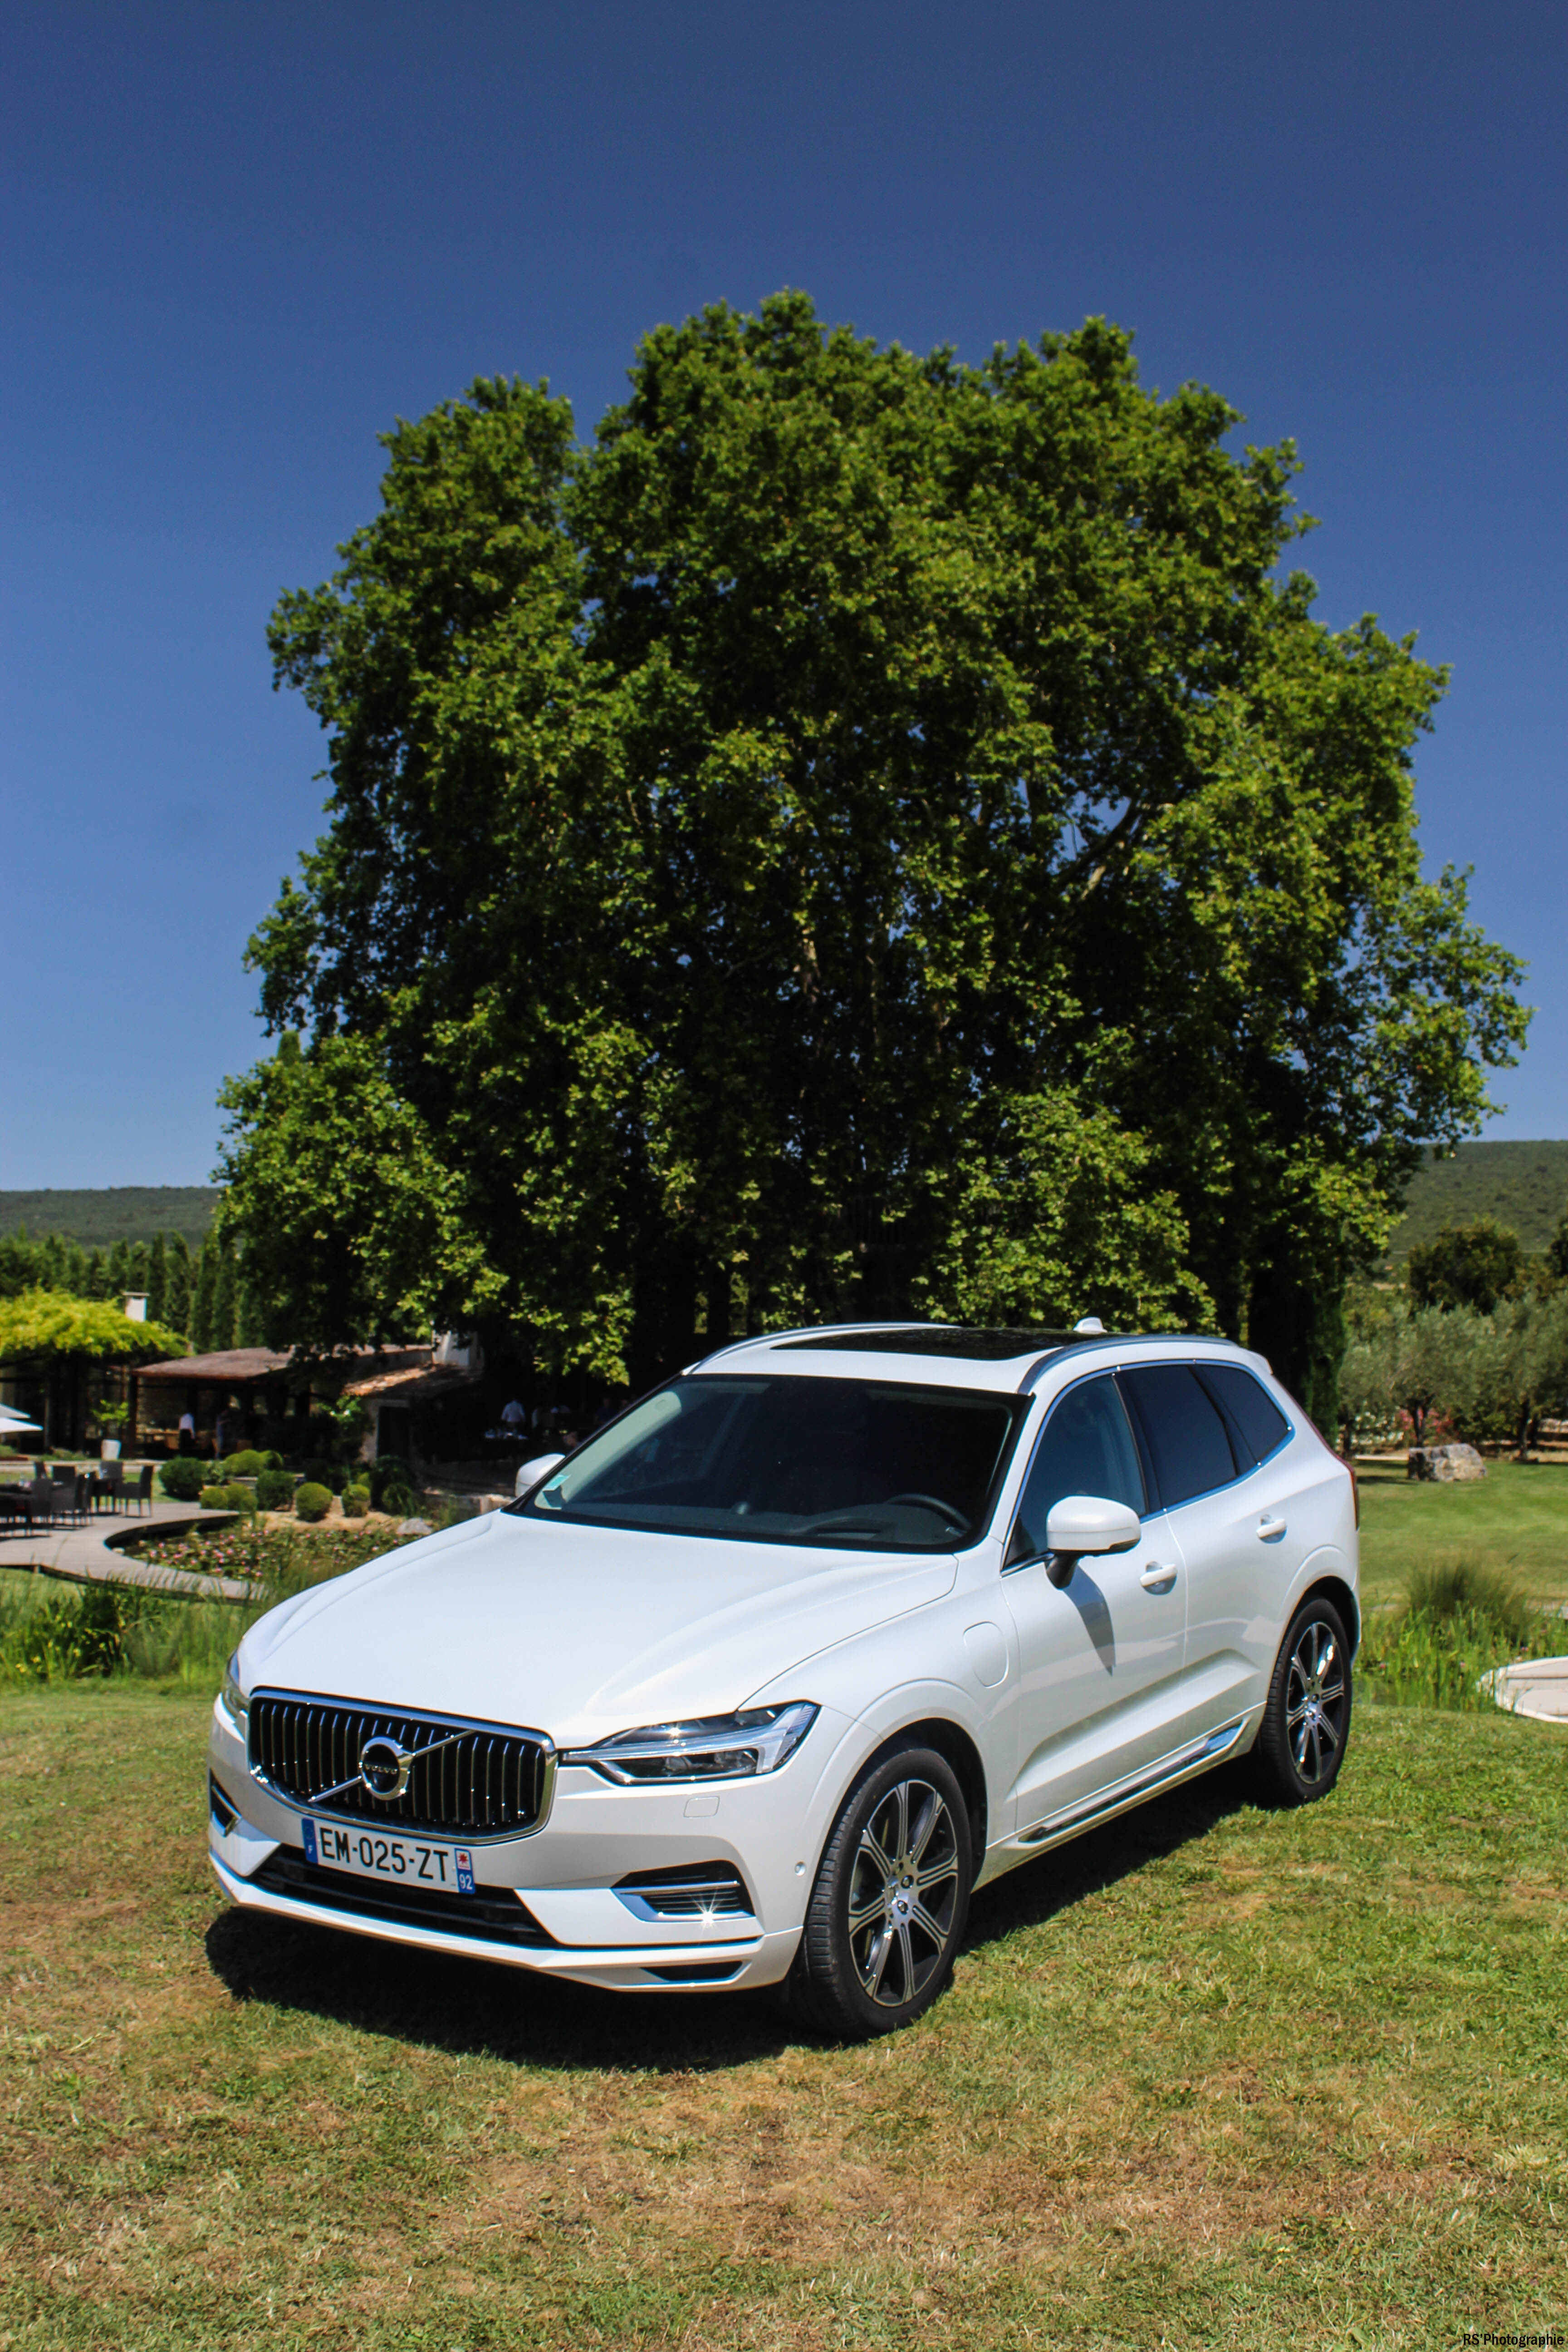 OpéVolvo18-volvo-xc60-avant-front-Arnaud Demasier-RSPhotographie